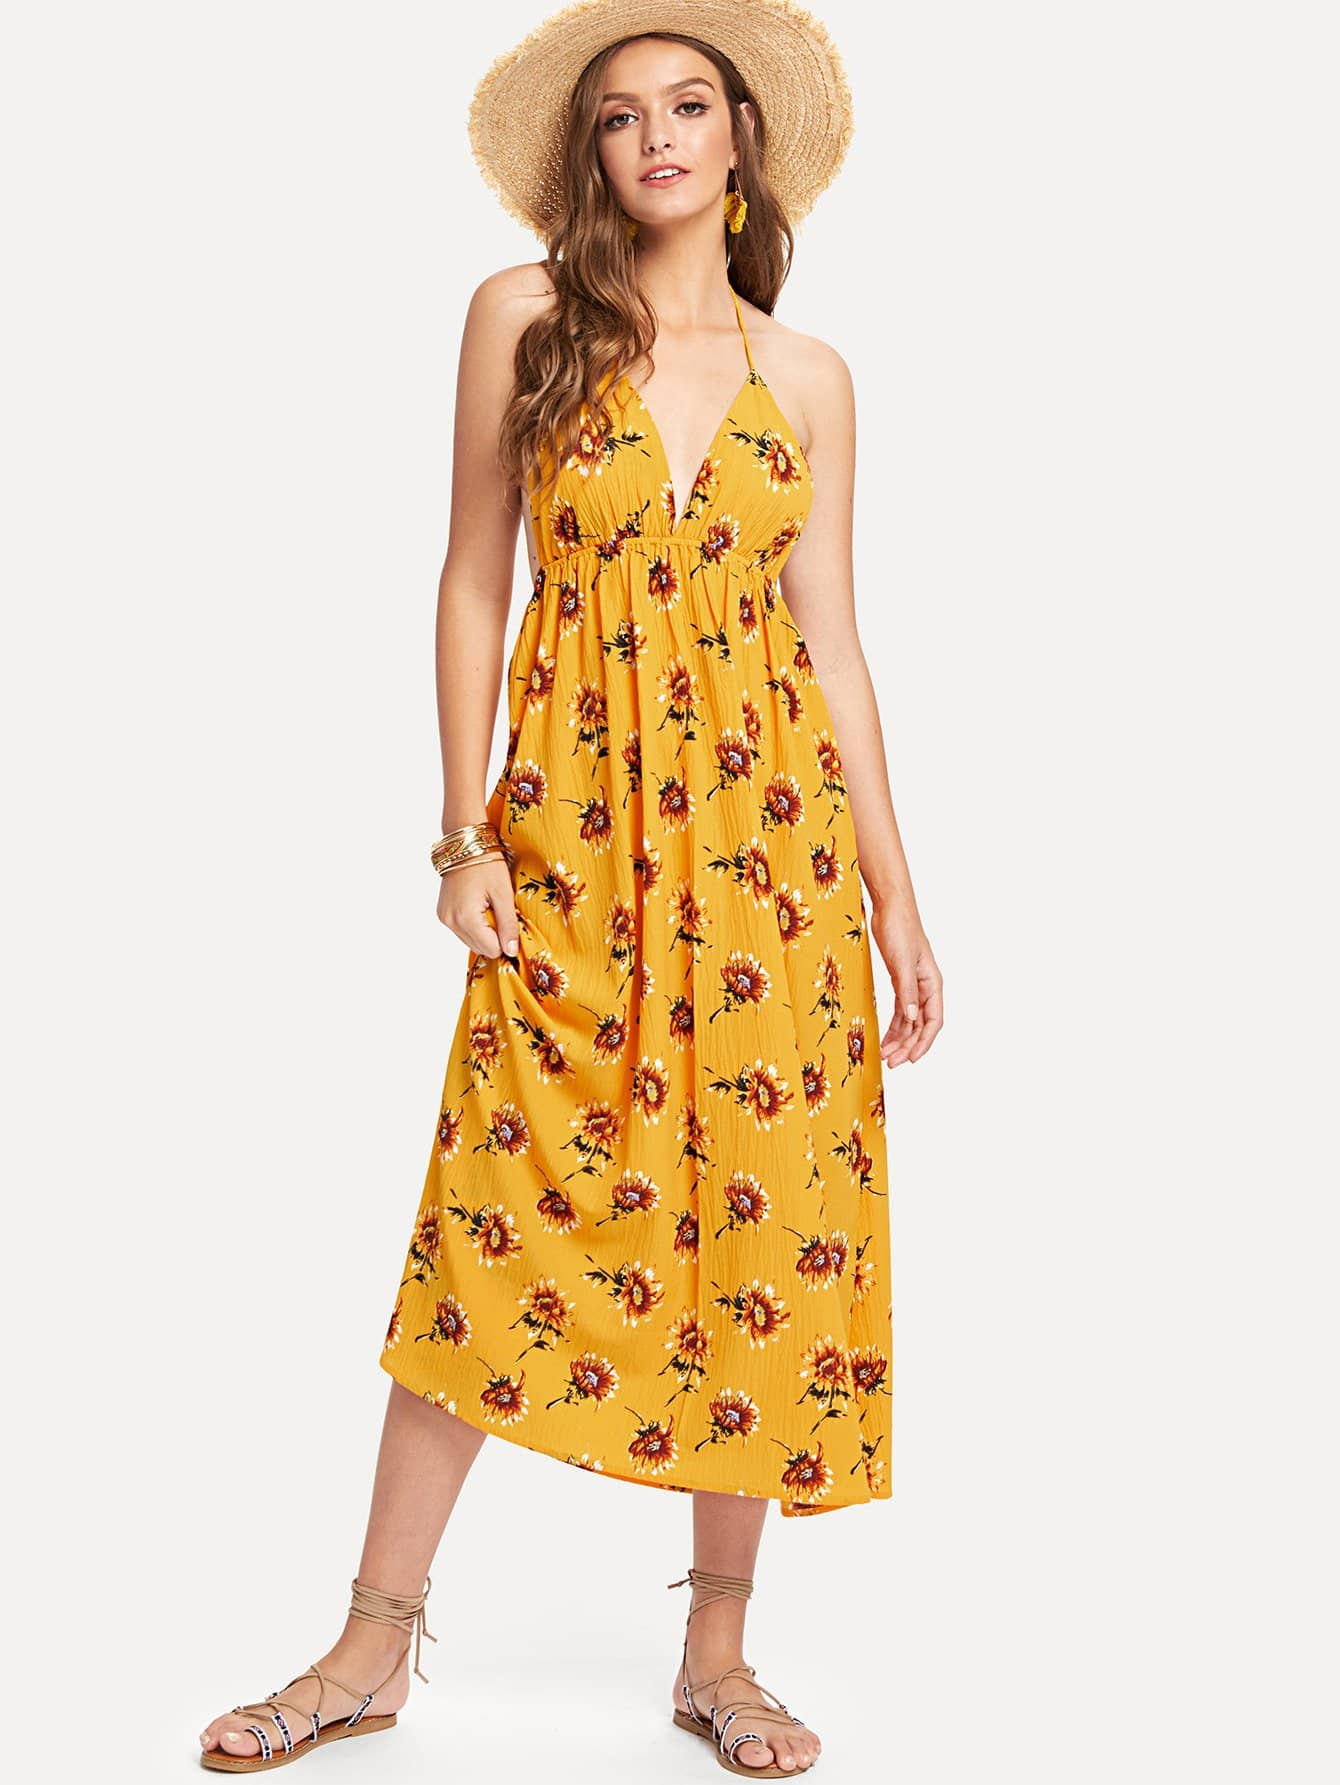 Plunge Neck Empire Waist Floral Dress floral printed empire waist dress with tube top